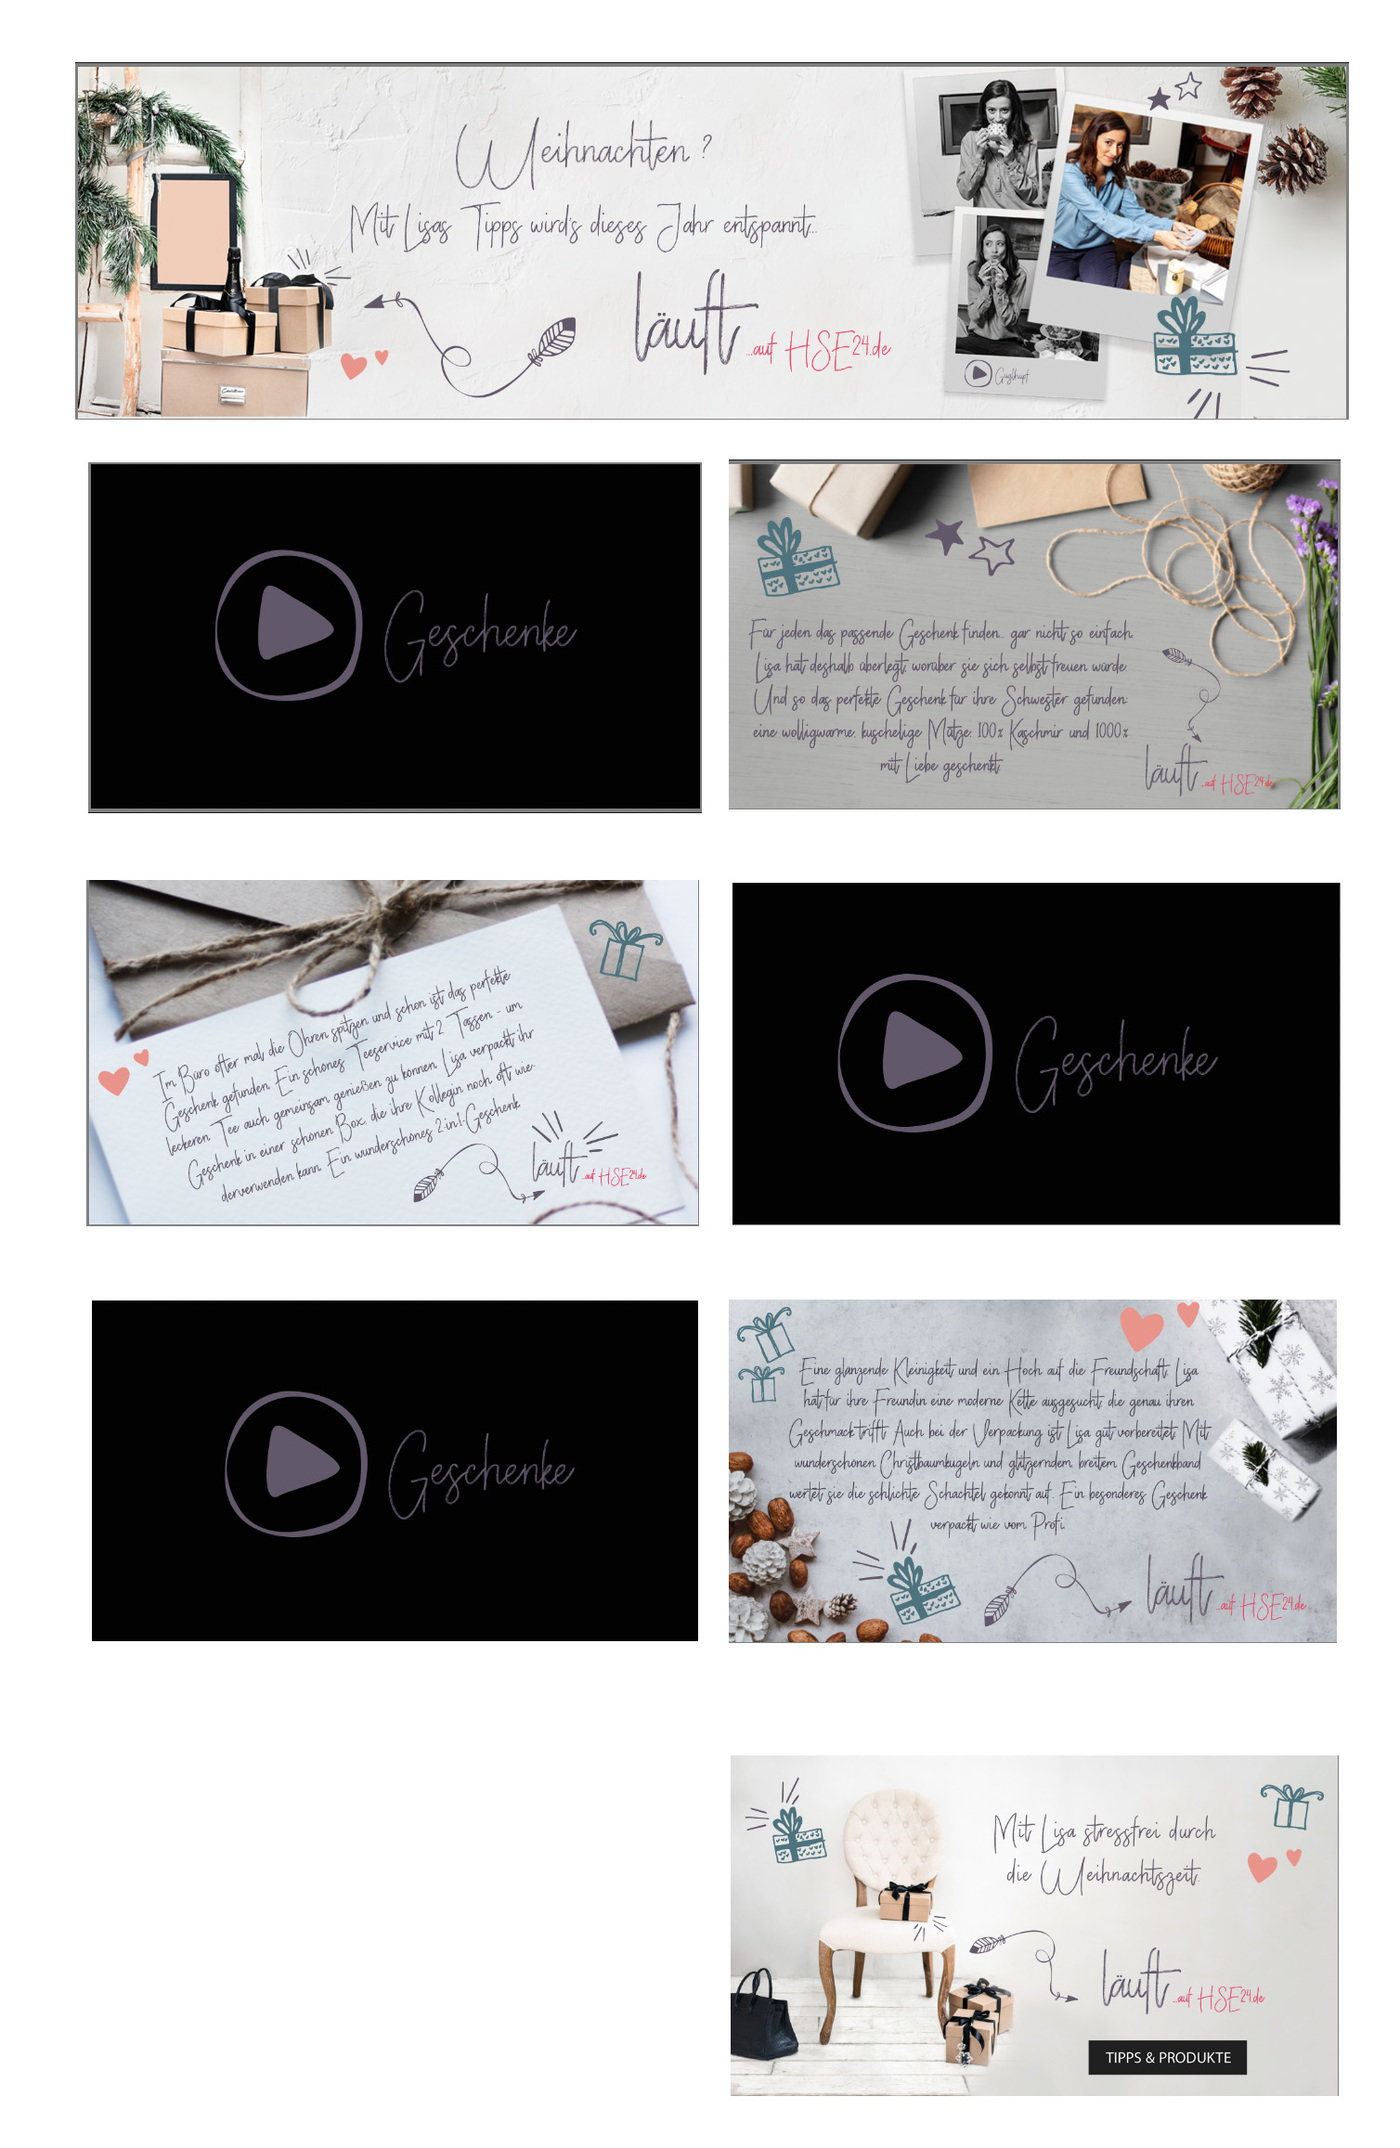 Moderne Christbaumkugeln.Online Site By Florence Chaumont At Coroflot Com